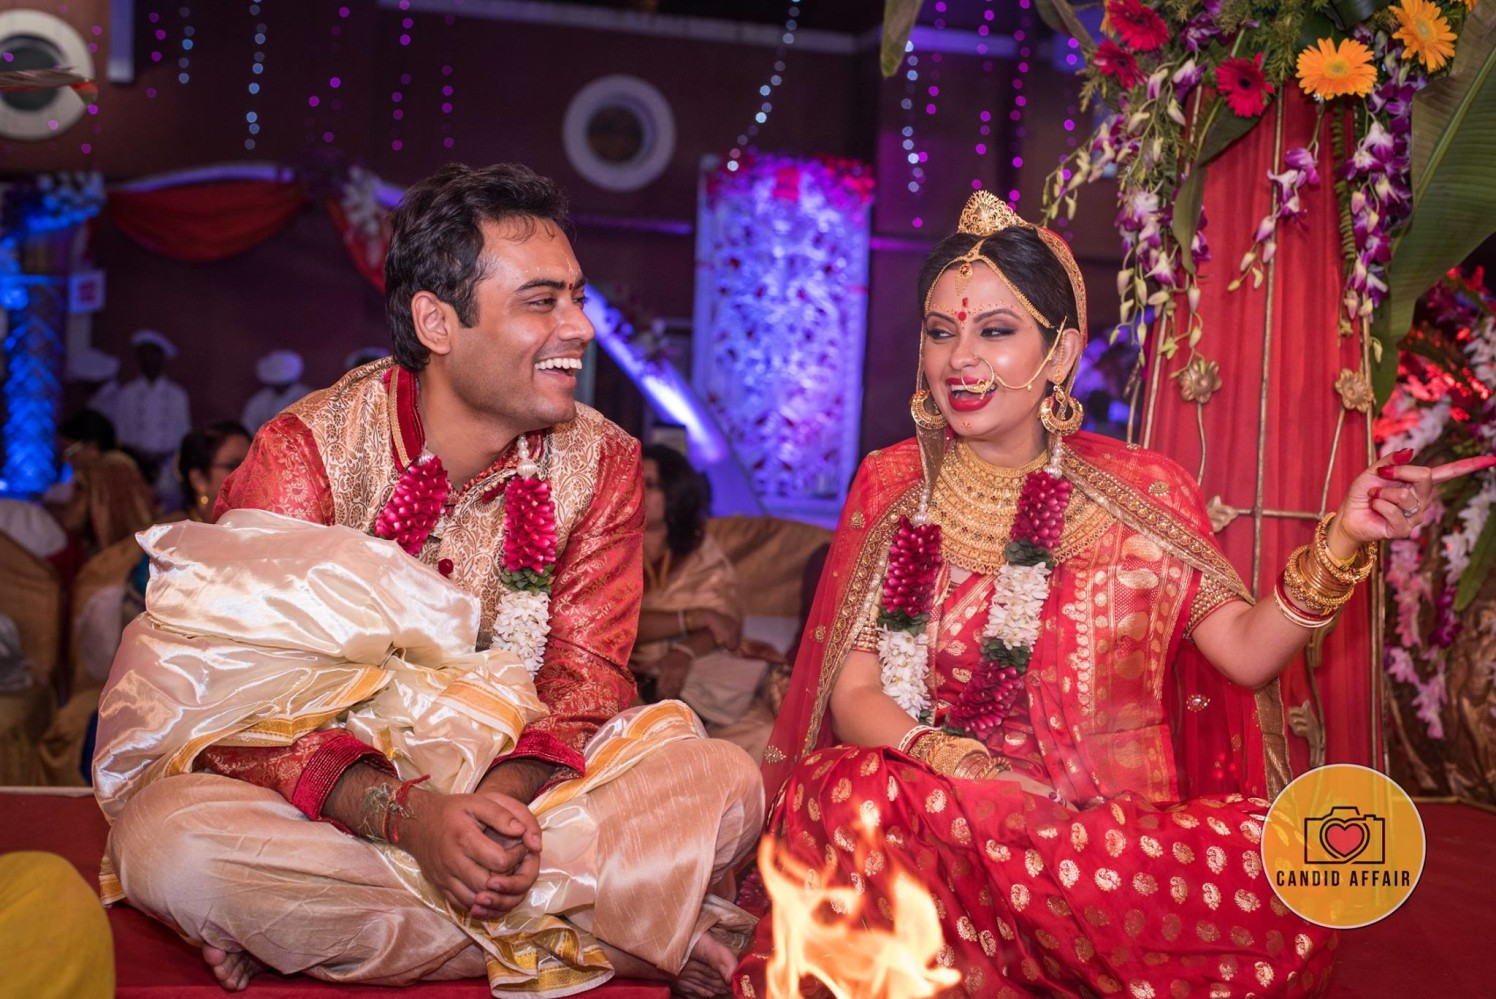 Bengali Bride And Groom's Candid Photography by Candid Affair Wedding-photography | Weddings Photos & Ideas